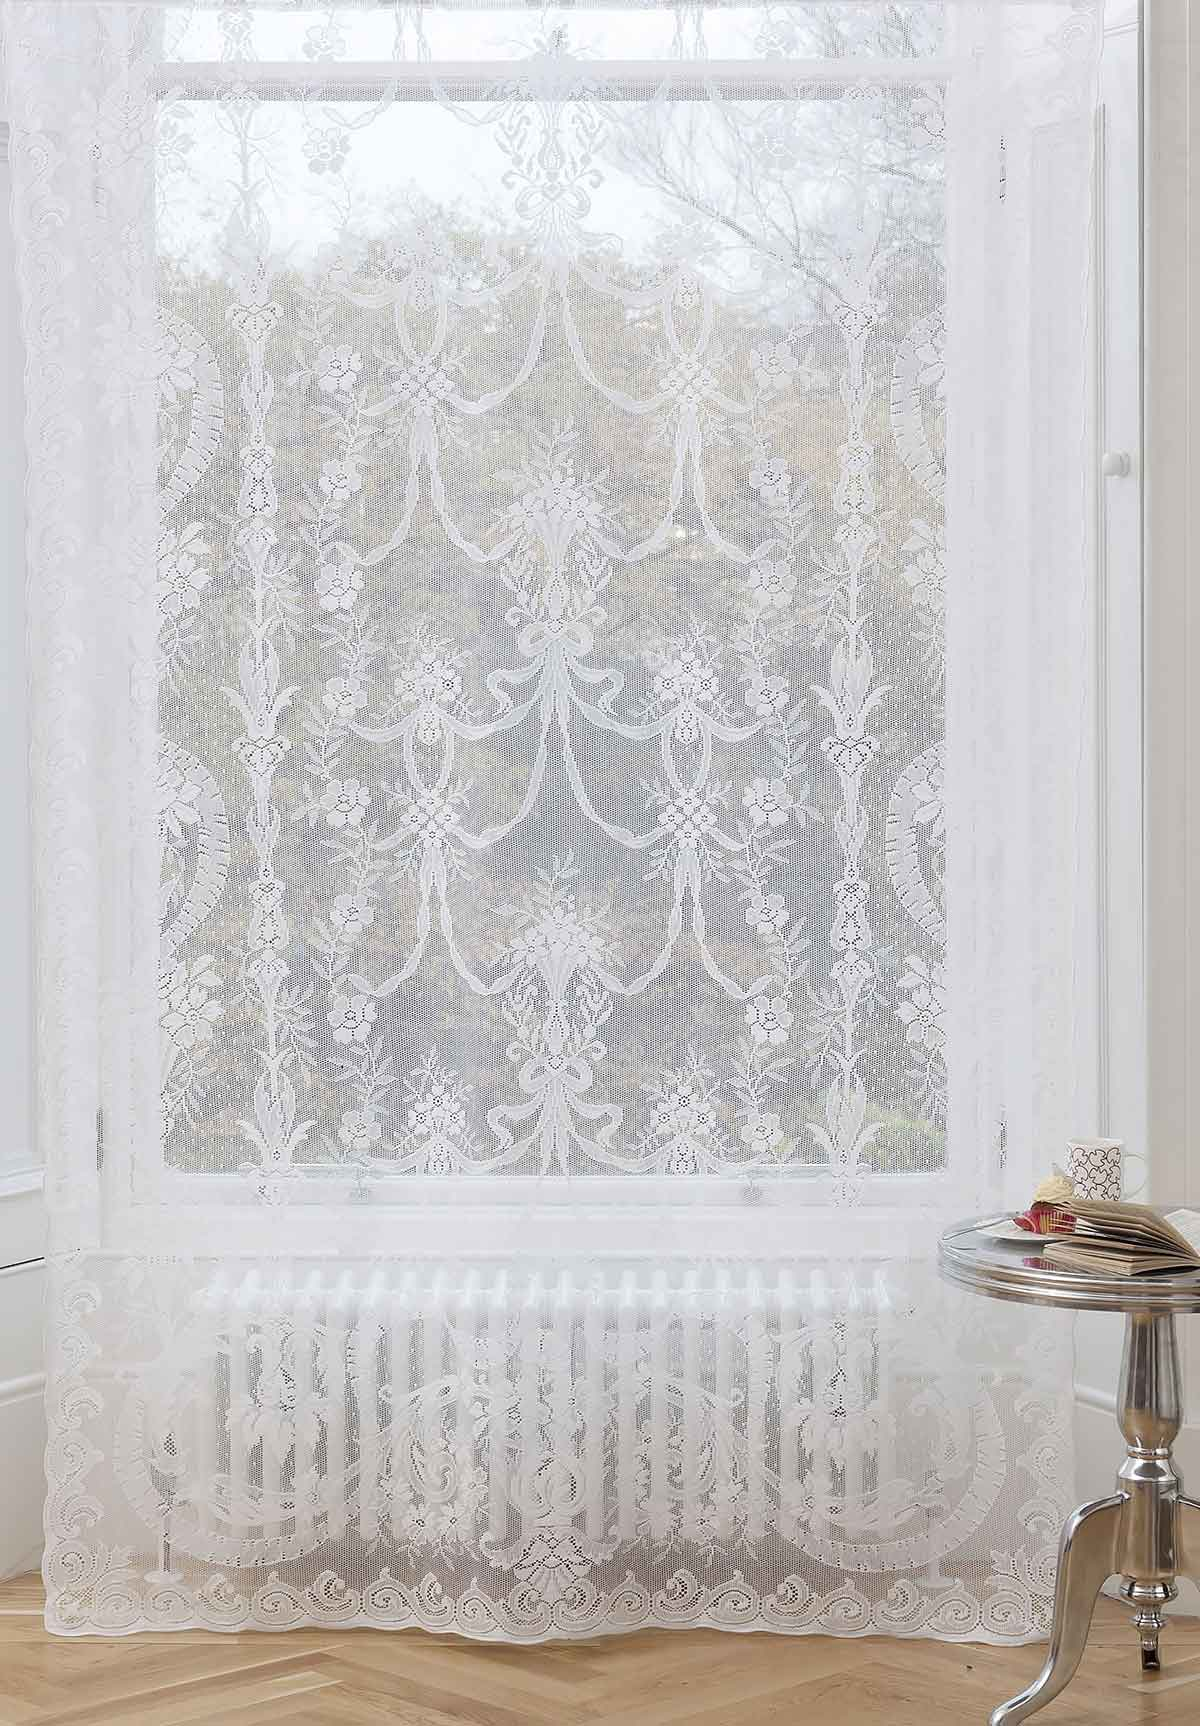 photo house of products european provence in with lace french ipxs france curtains